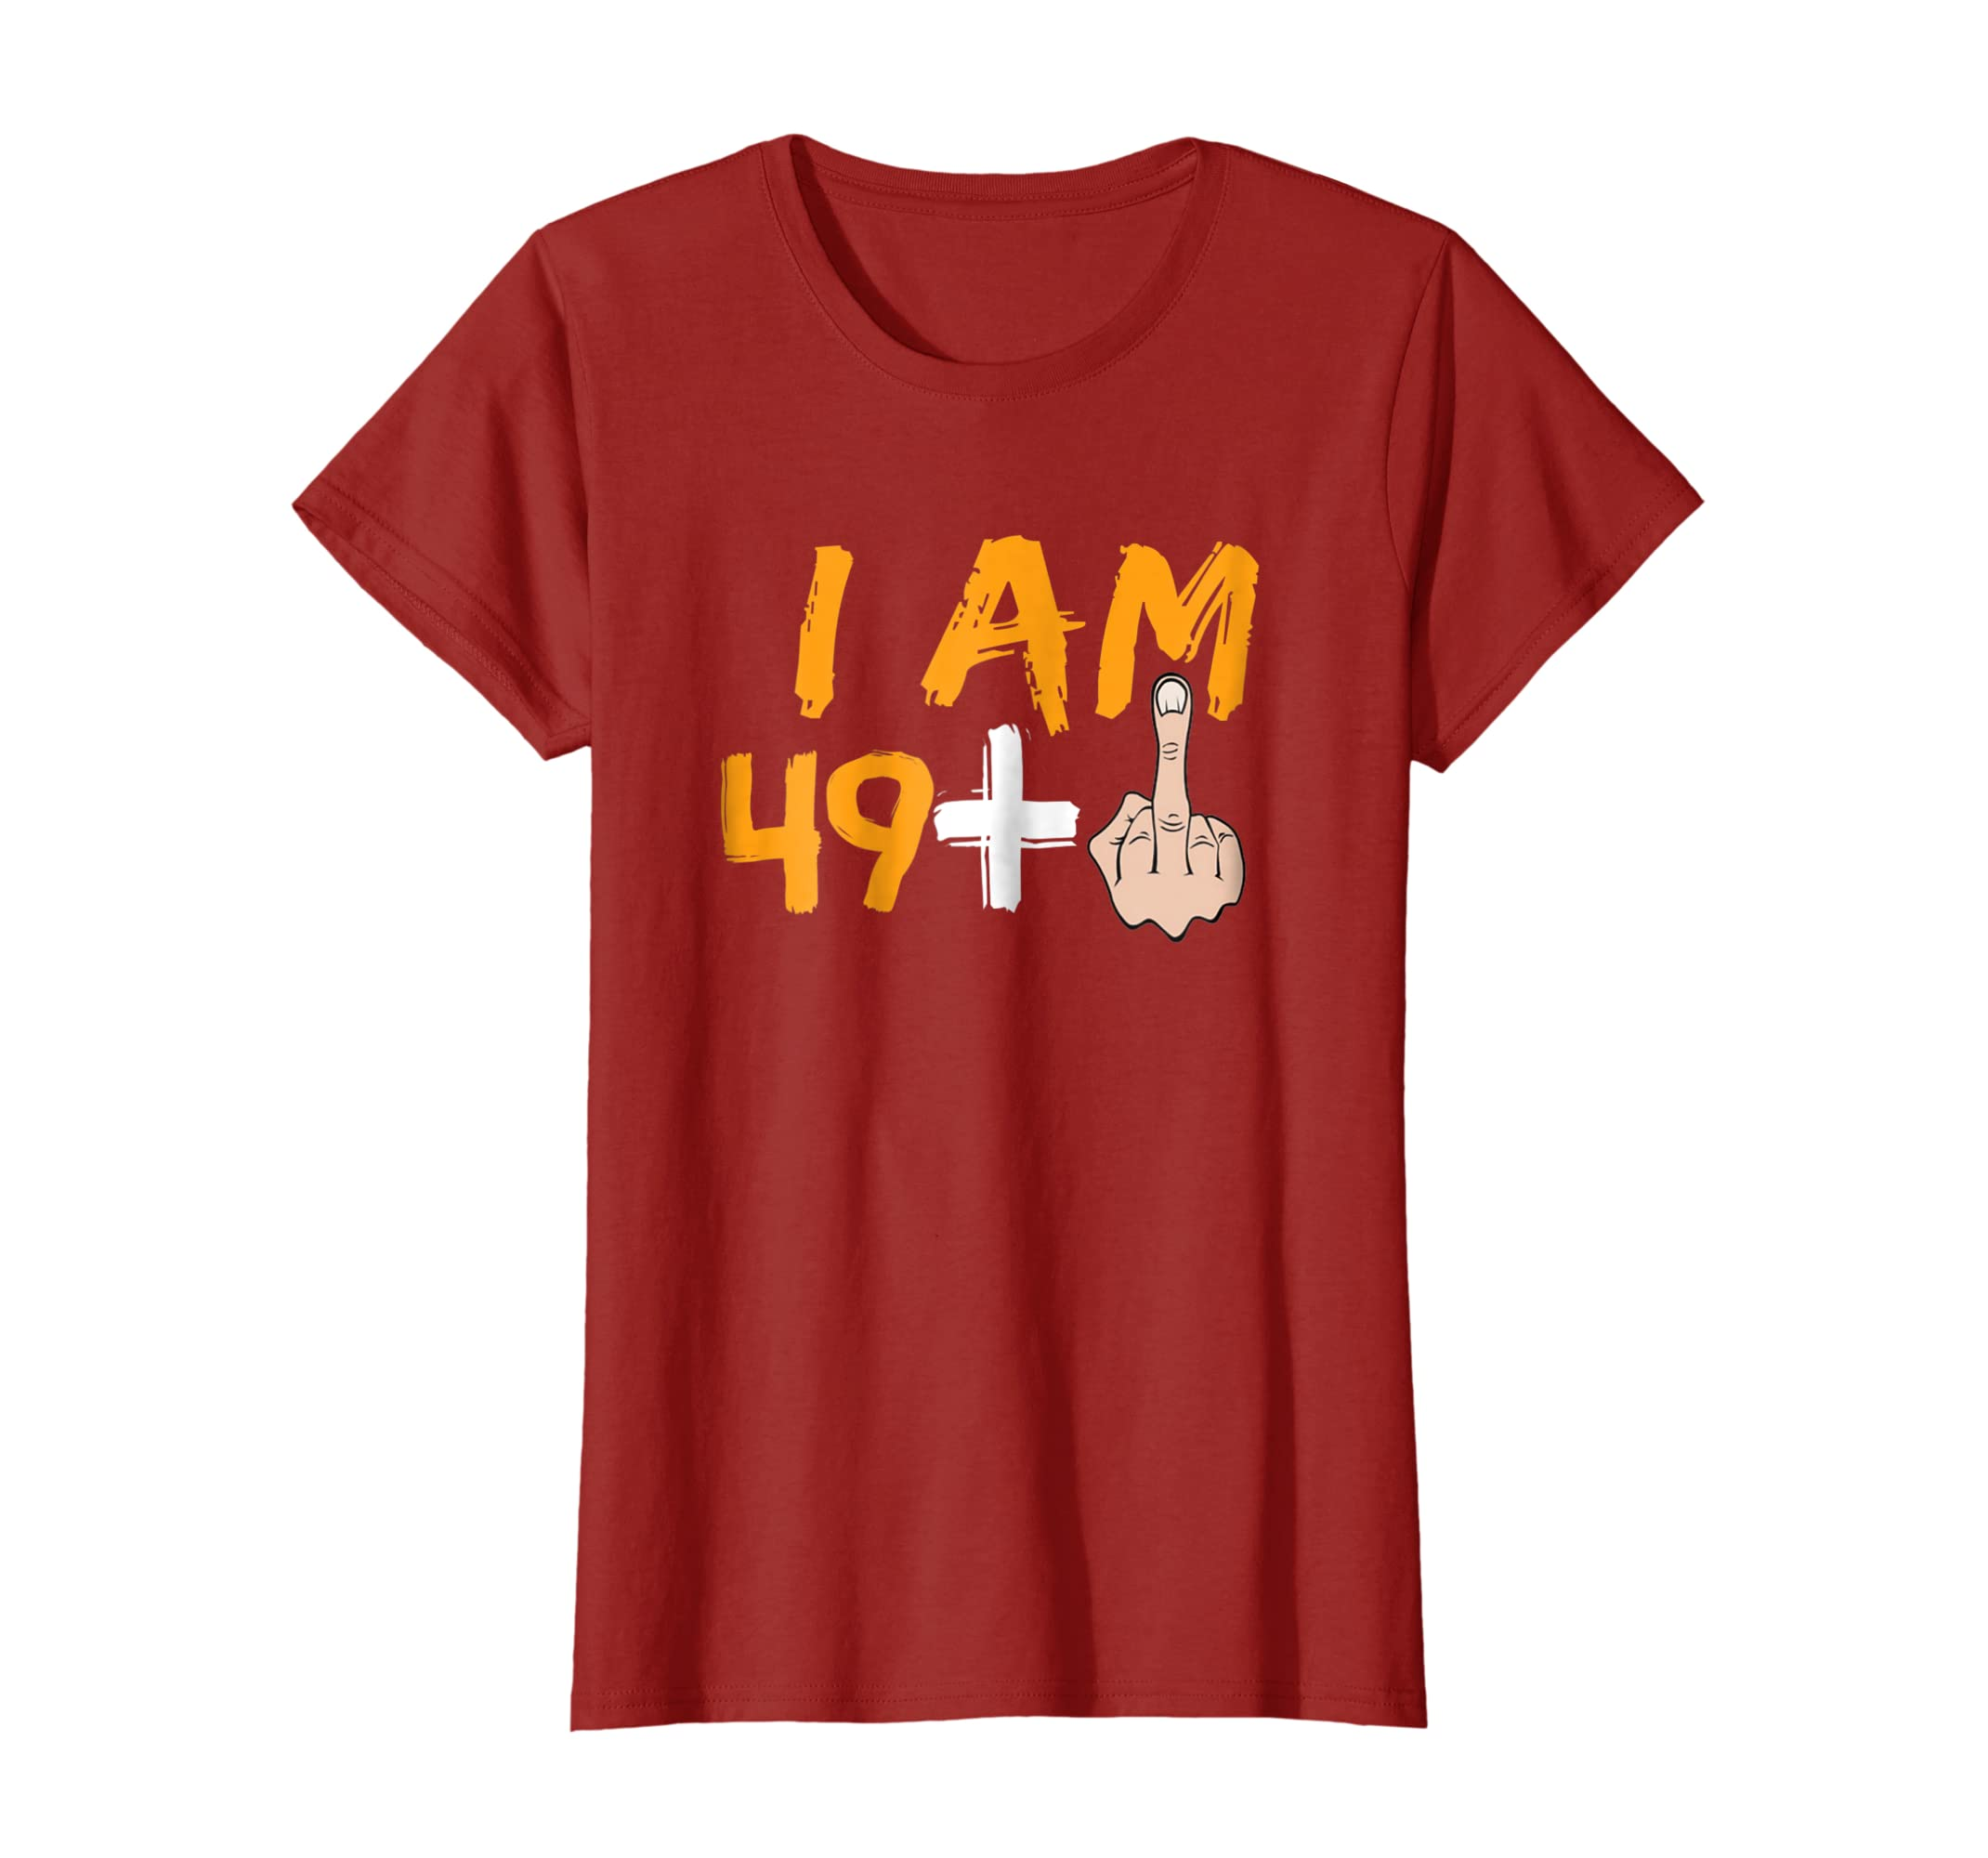 50th birthday Gift ideas Funny T shirt For men and women-Awarplus